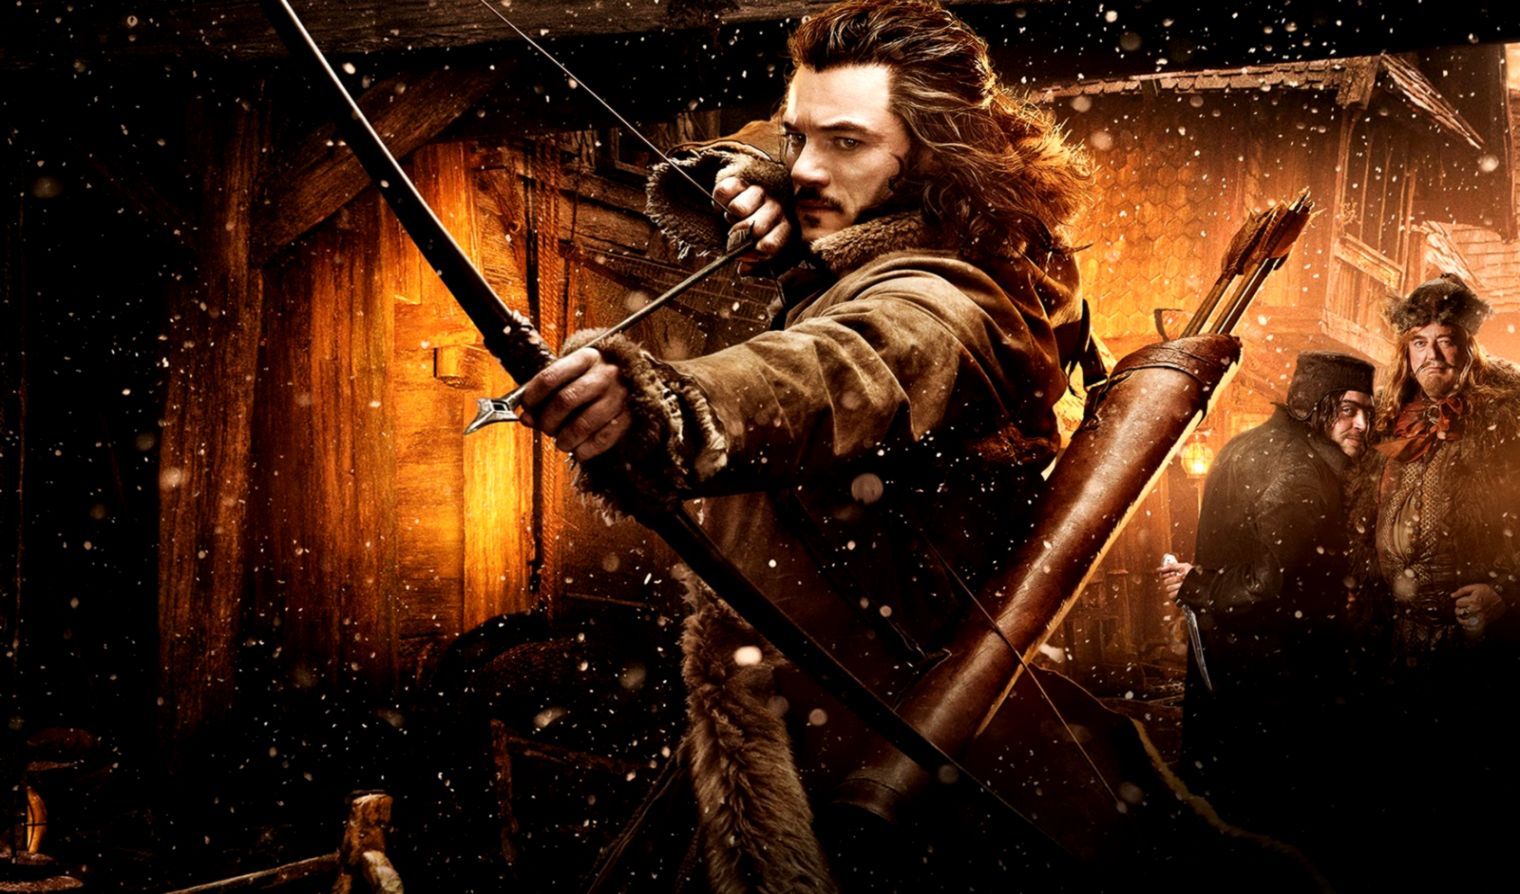 The Hobbit Movie HD Wallpapers  The Hobbit Movie Pictures  Cool